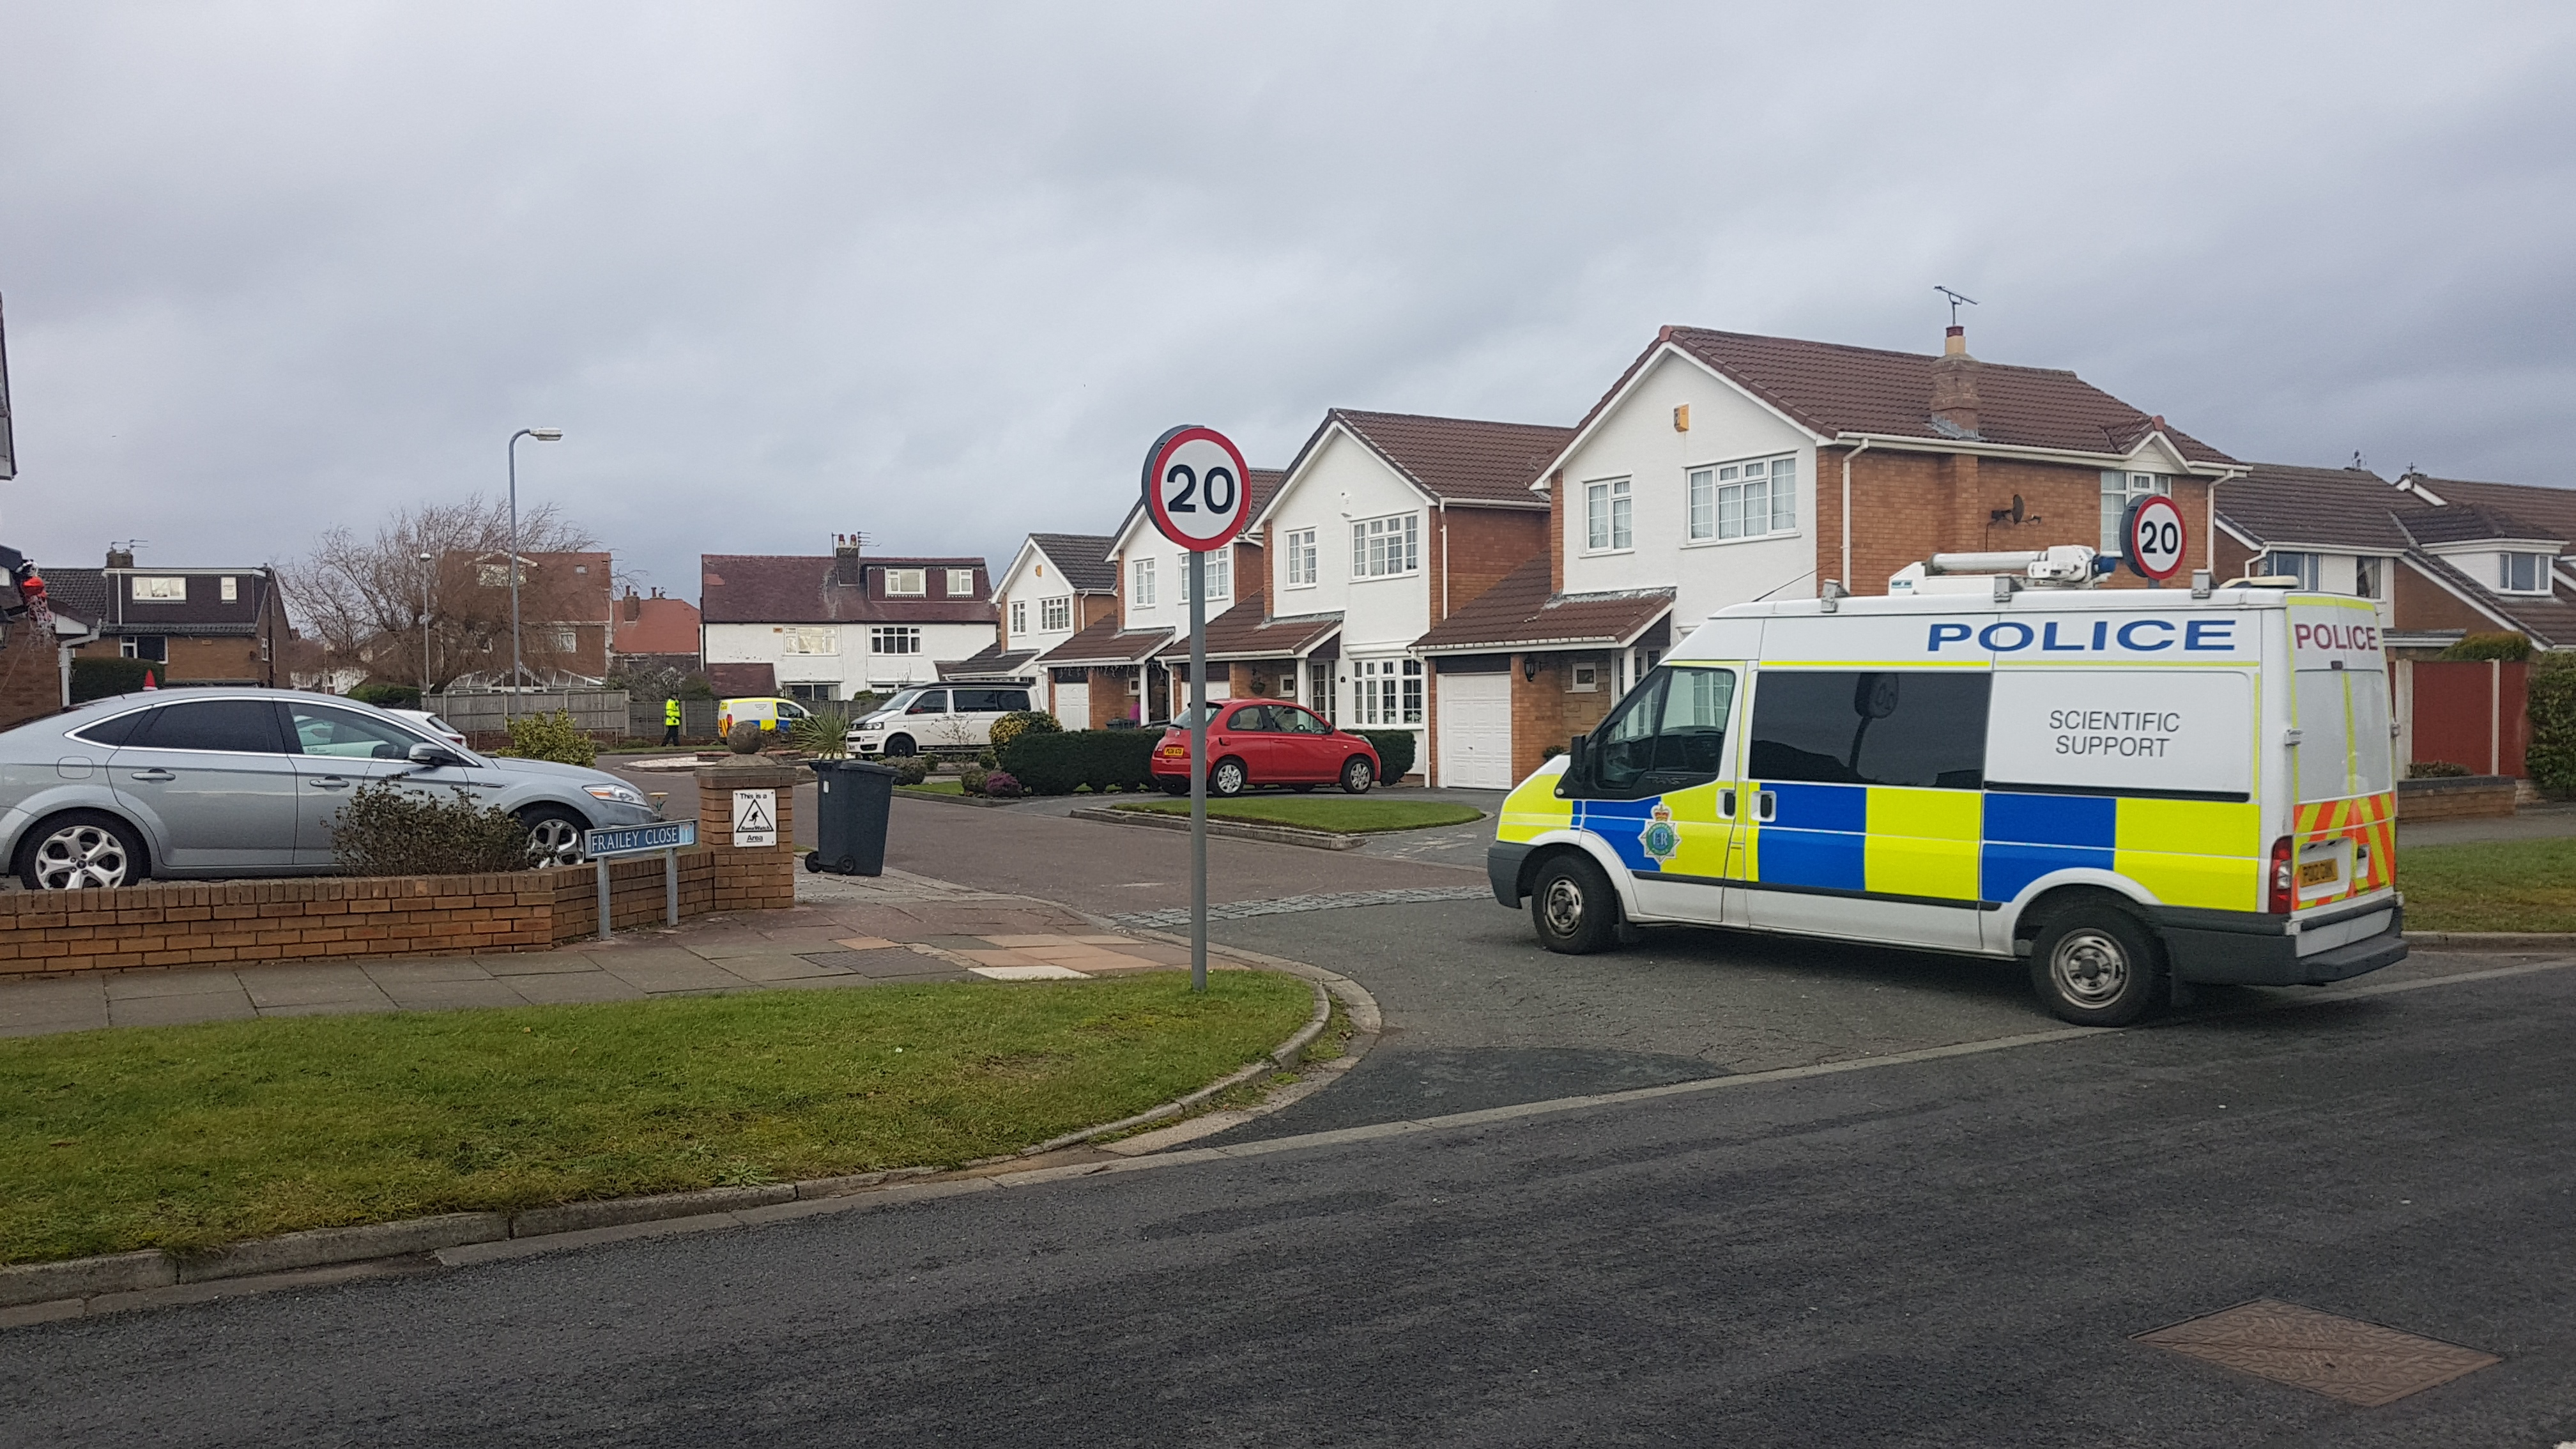 Merseyside Police can confirm enquiries are underway following the death of a man and woman in Southport.     A report of concern for the safety of a man and woman in their 80s on Frailey Close was received today (Thursday 14 December 2017).     Emergency services were called to the house at about...